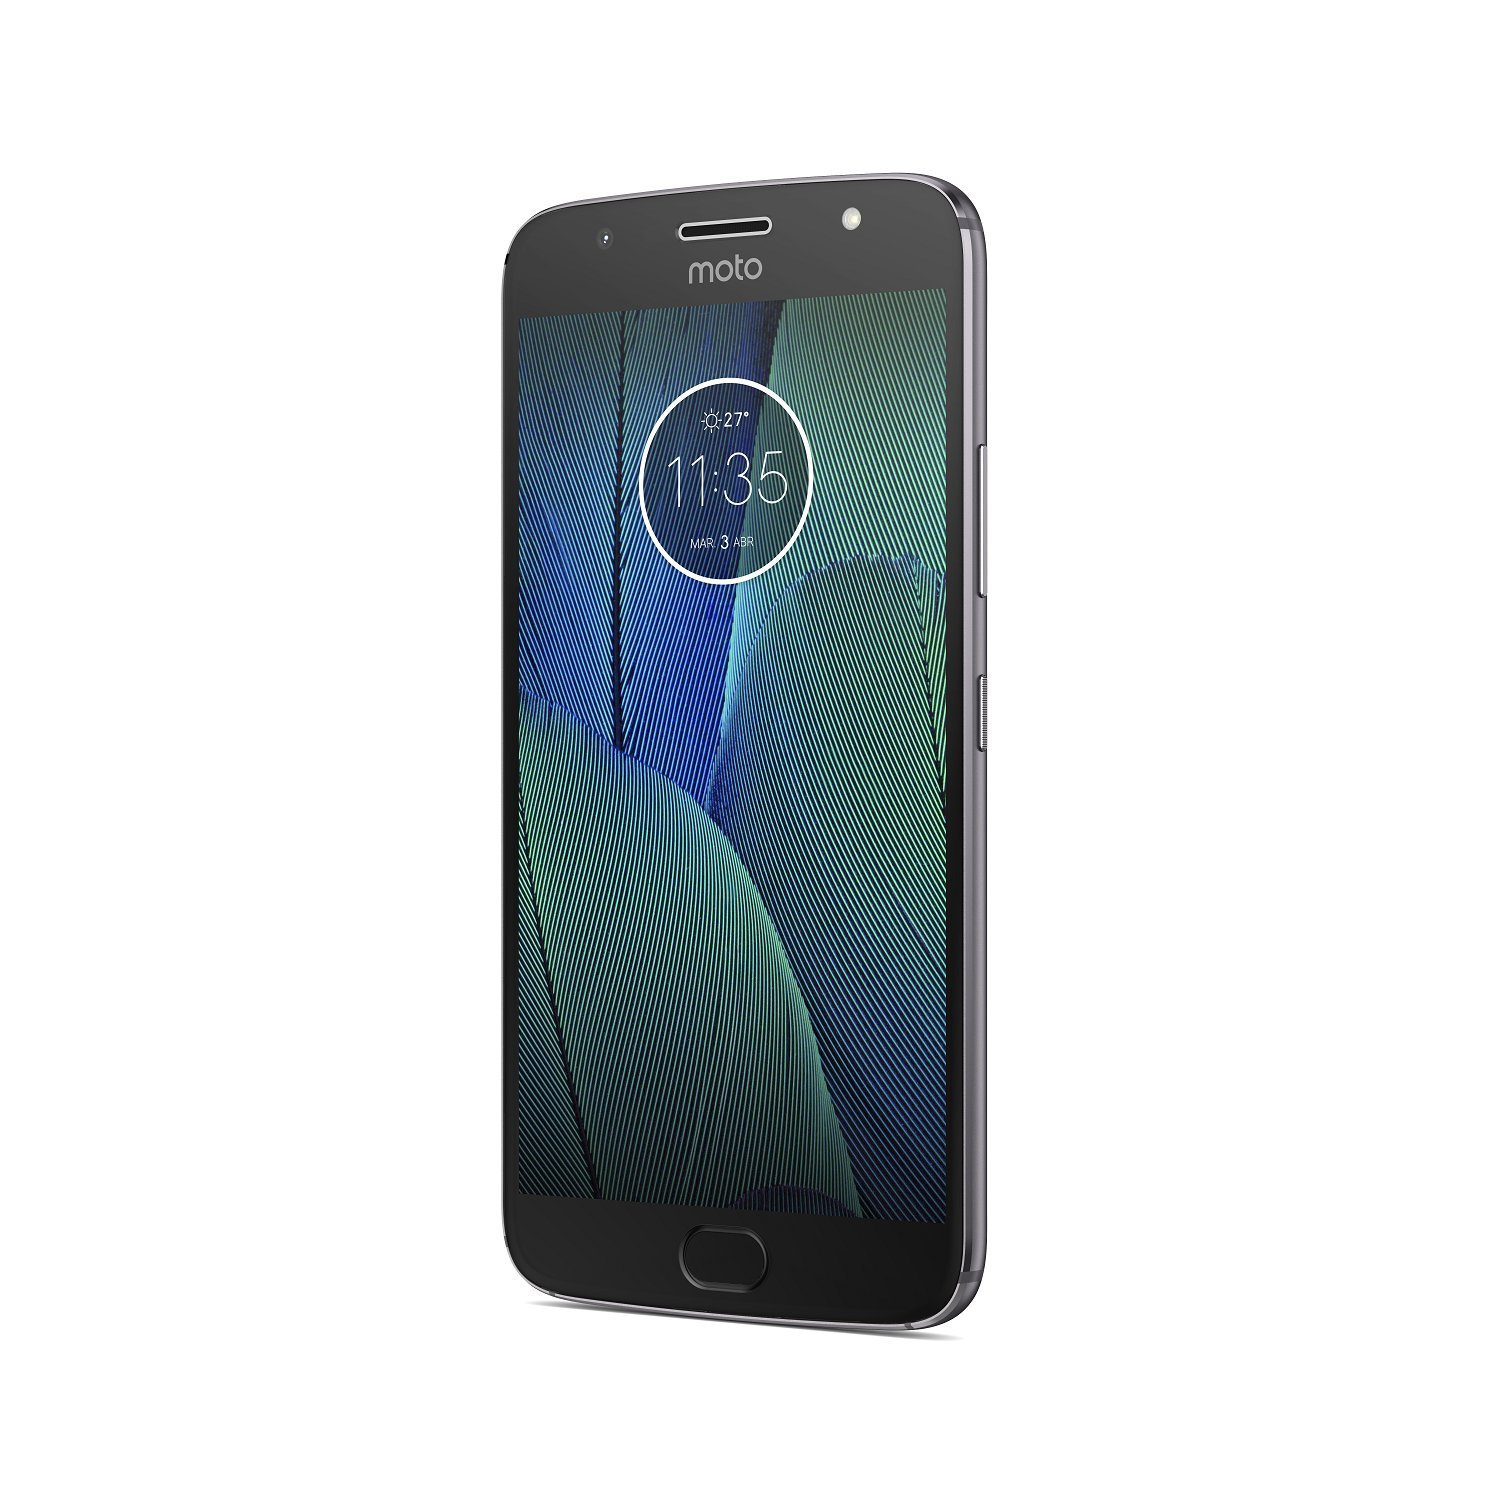 Motorola Moto G5 S Plus, Color Grey (Greys), Dual SIM, Internal 32 Hard GB De Memoria, 3 Hard GB RAM, Screen 5.5